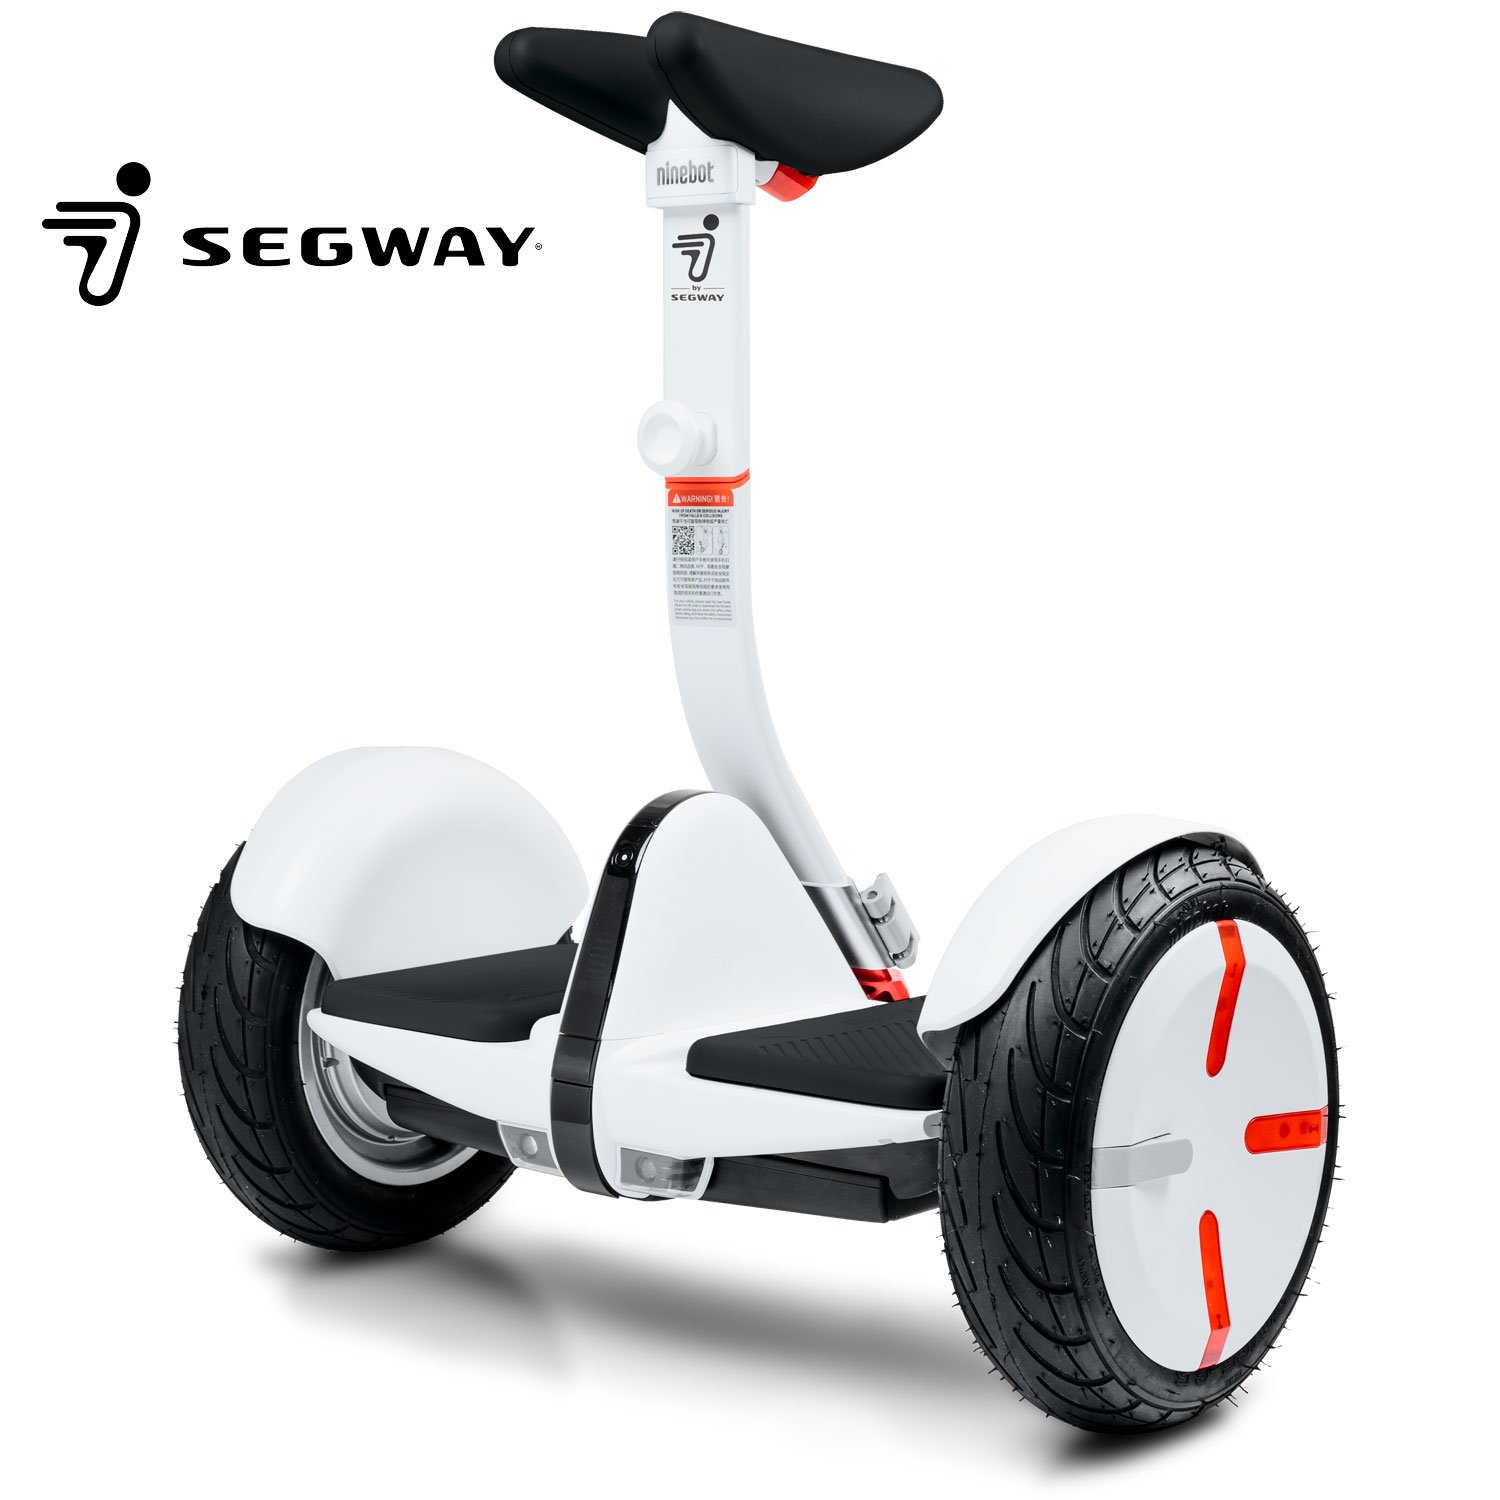 Amazon.com: Segway miniPRO Smart Self Balancing Personal Transporter with  Mobile App Control, White: Sports & Outdoors